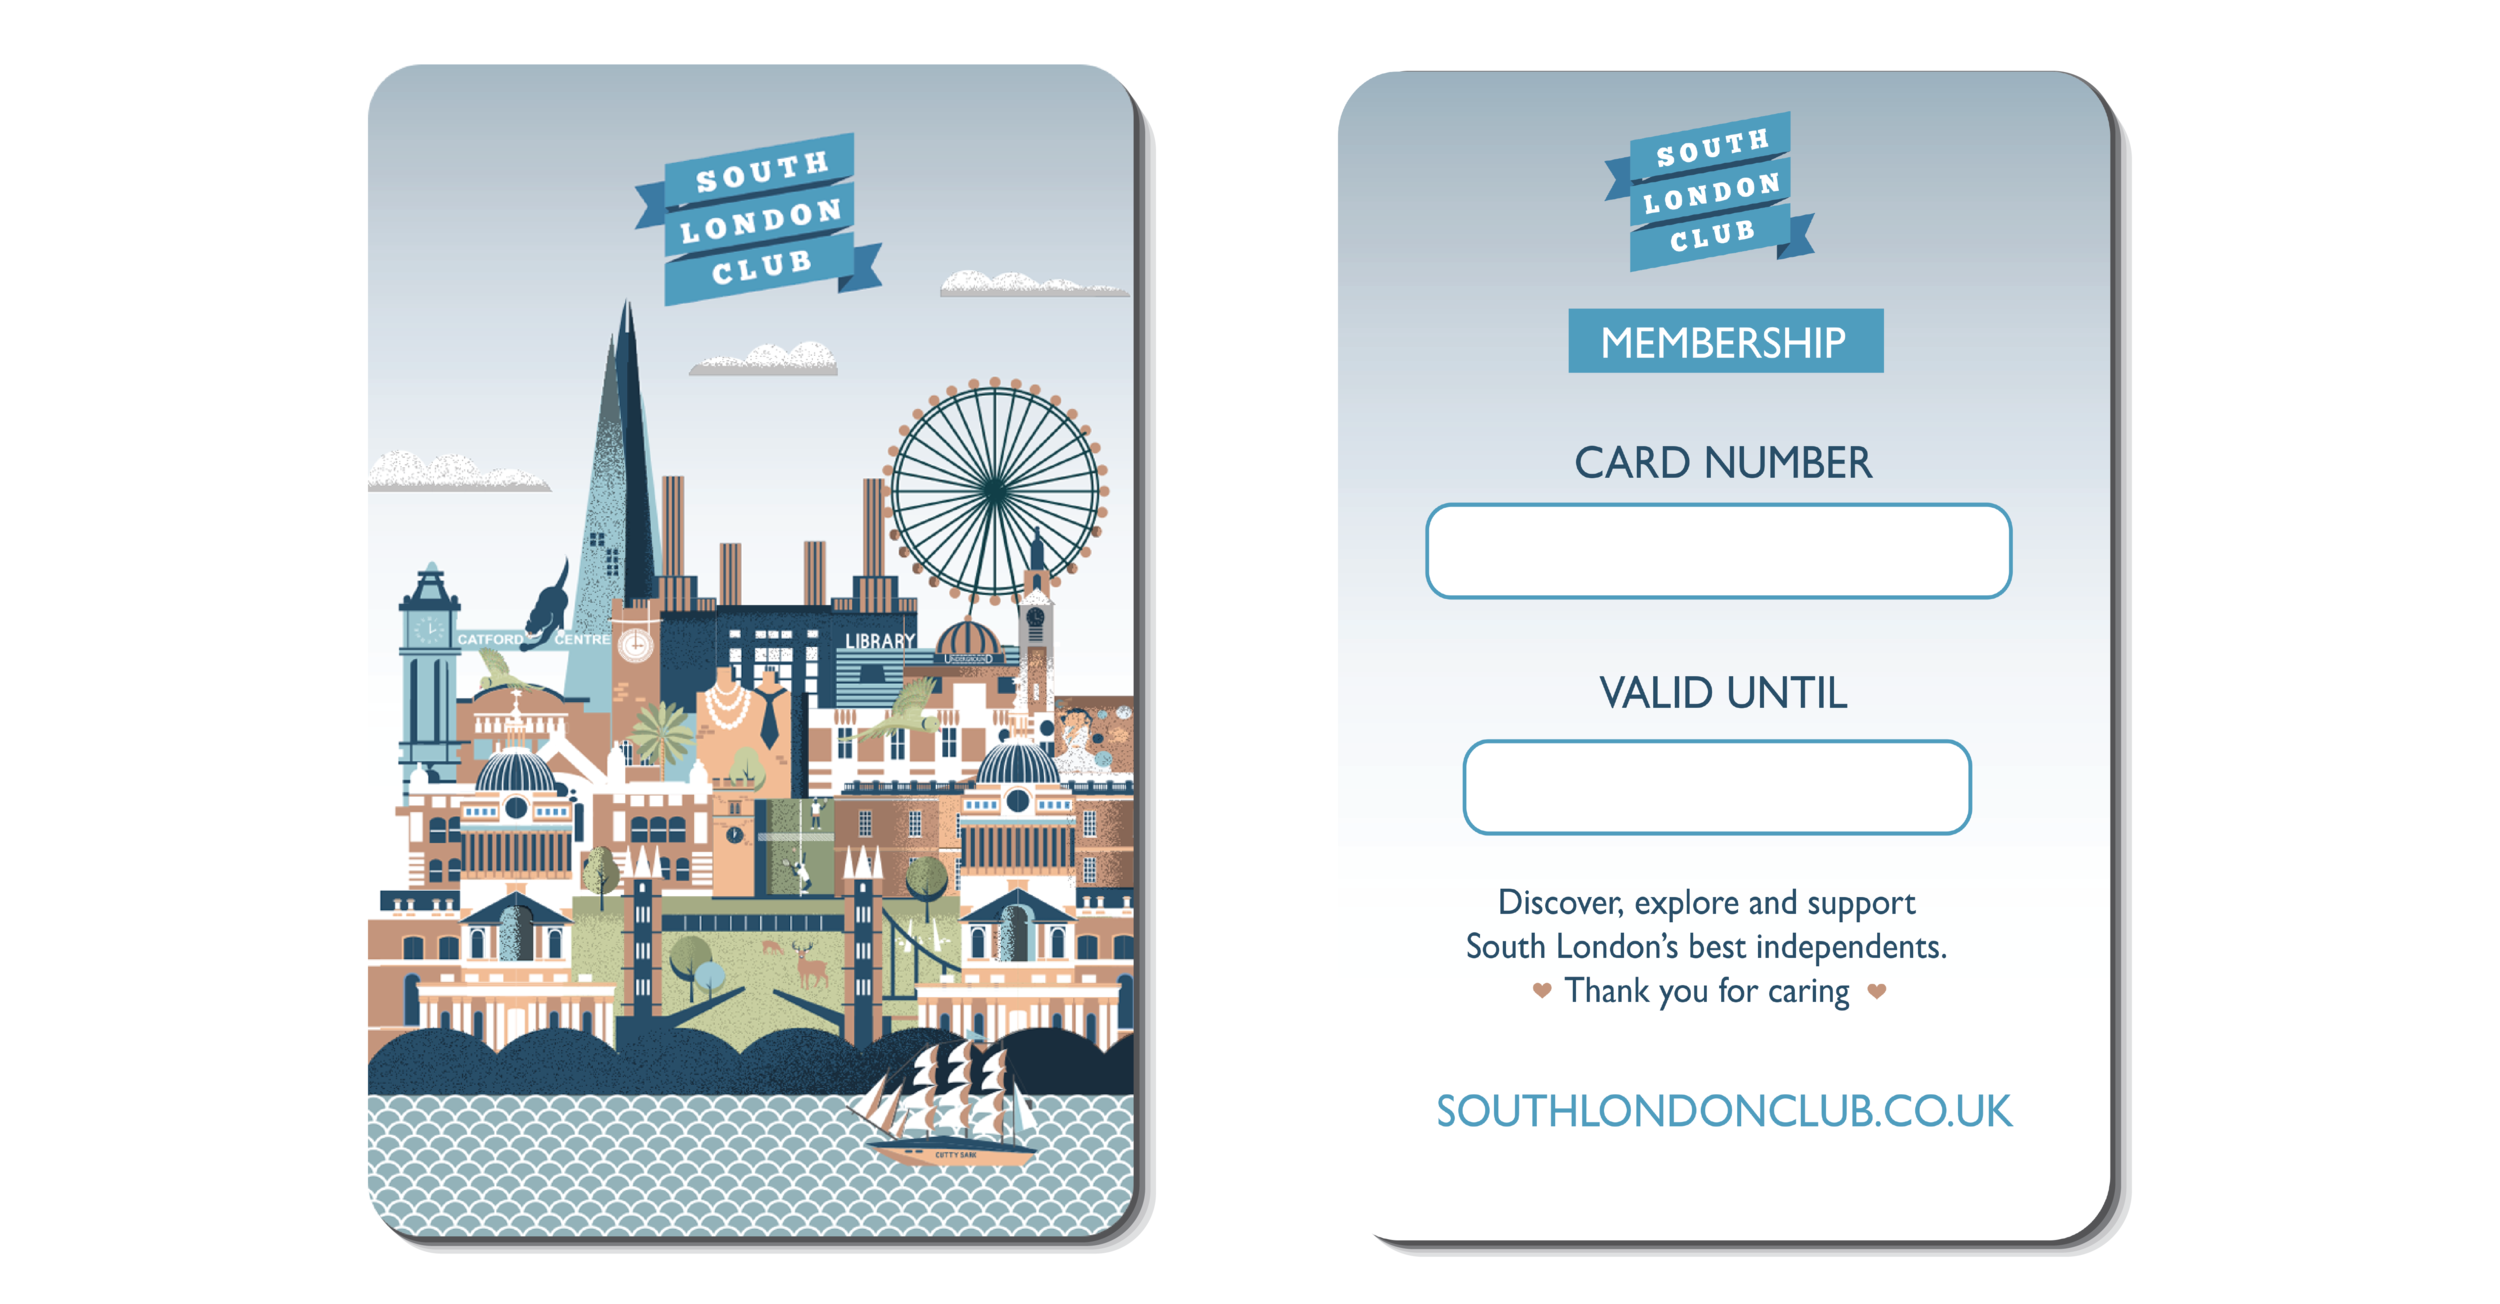 South London Club Card New BACK AND FRON.png